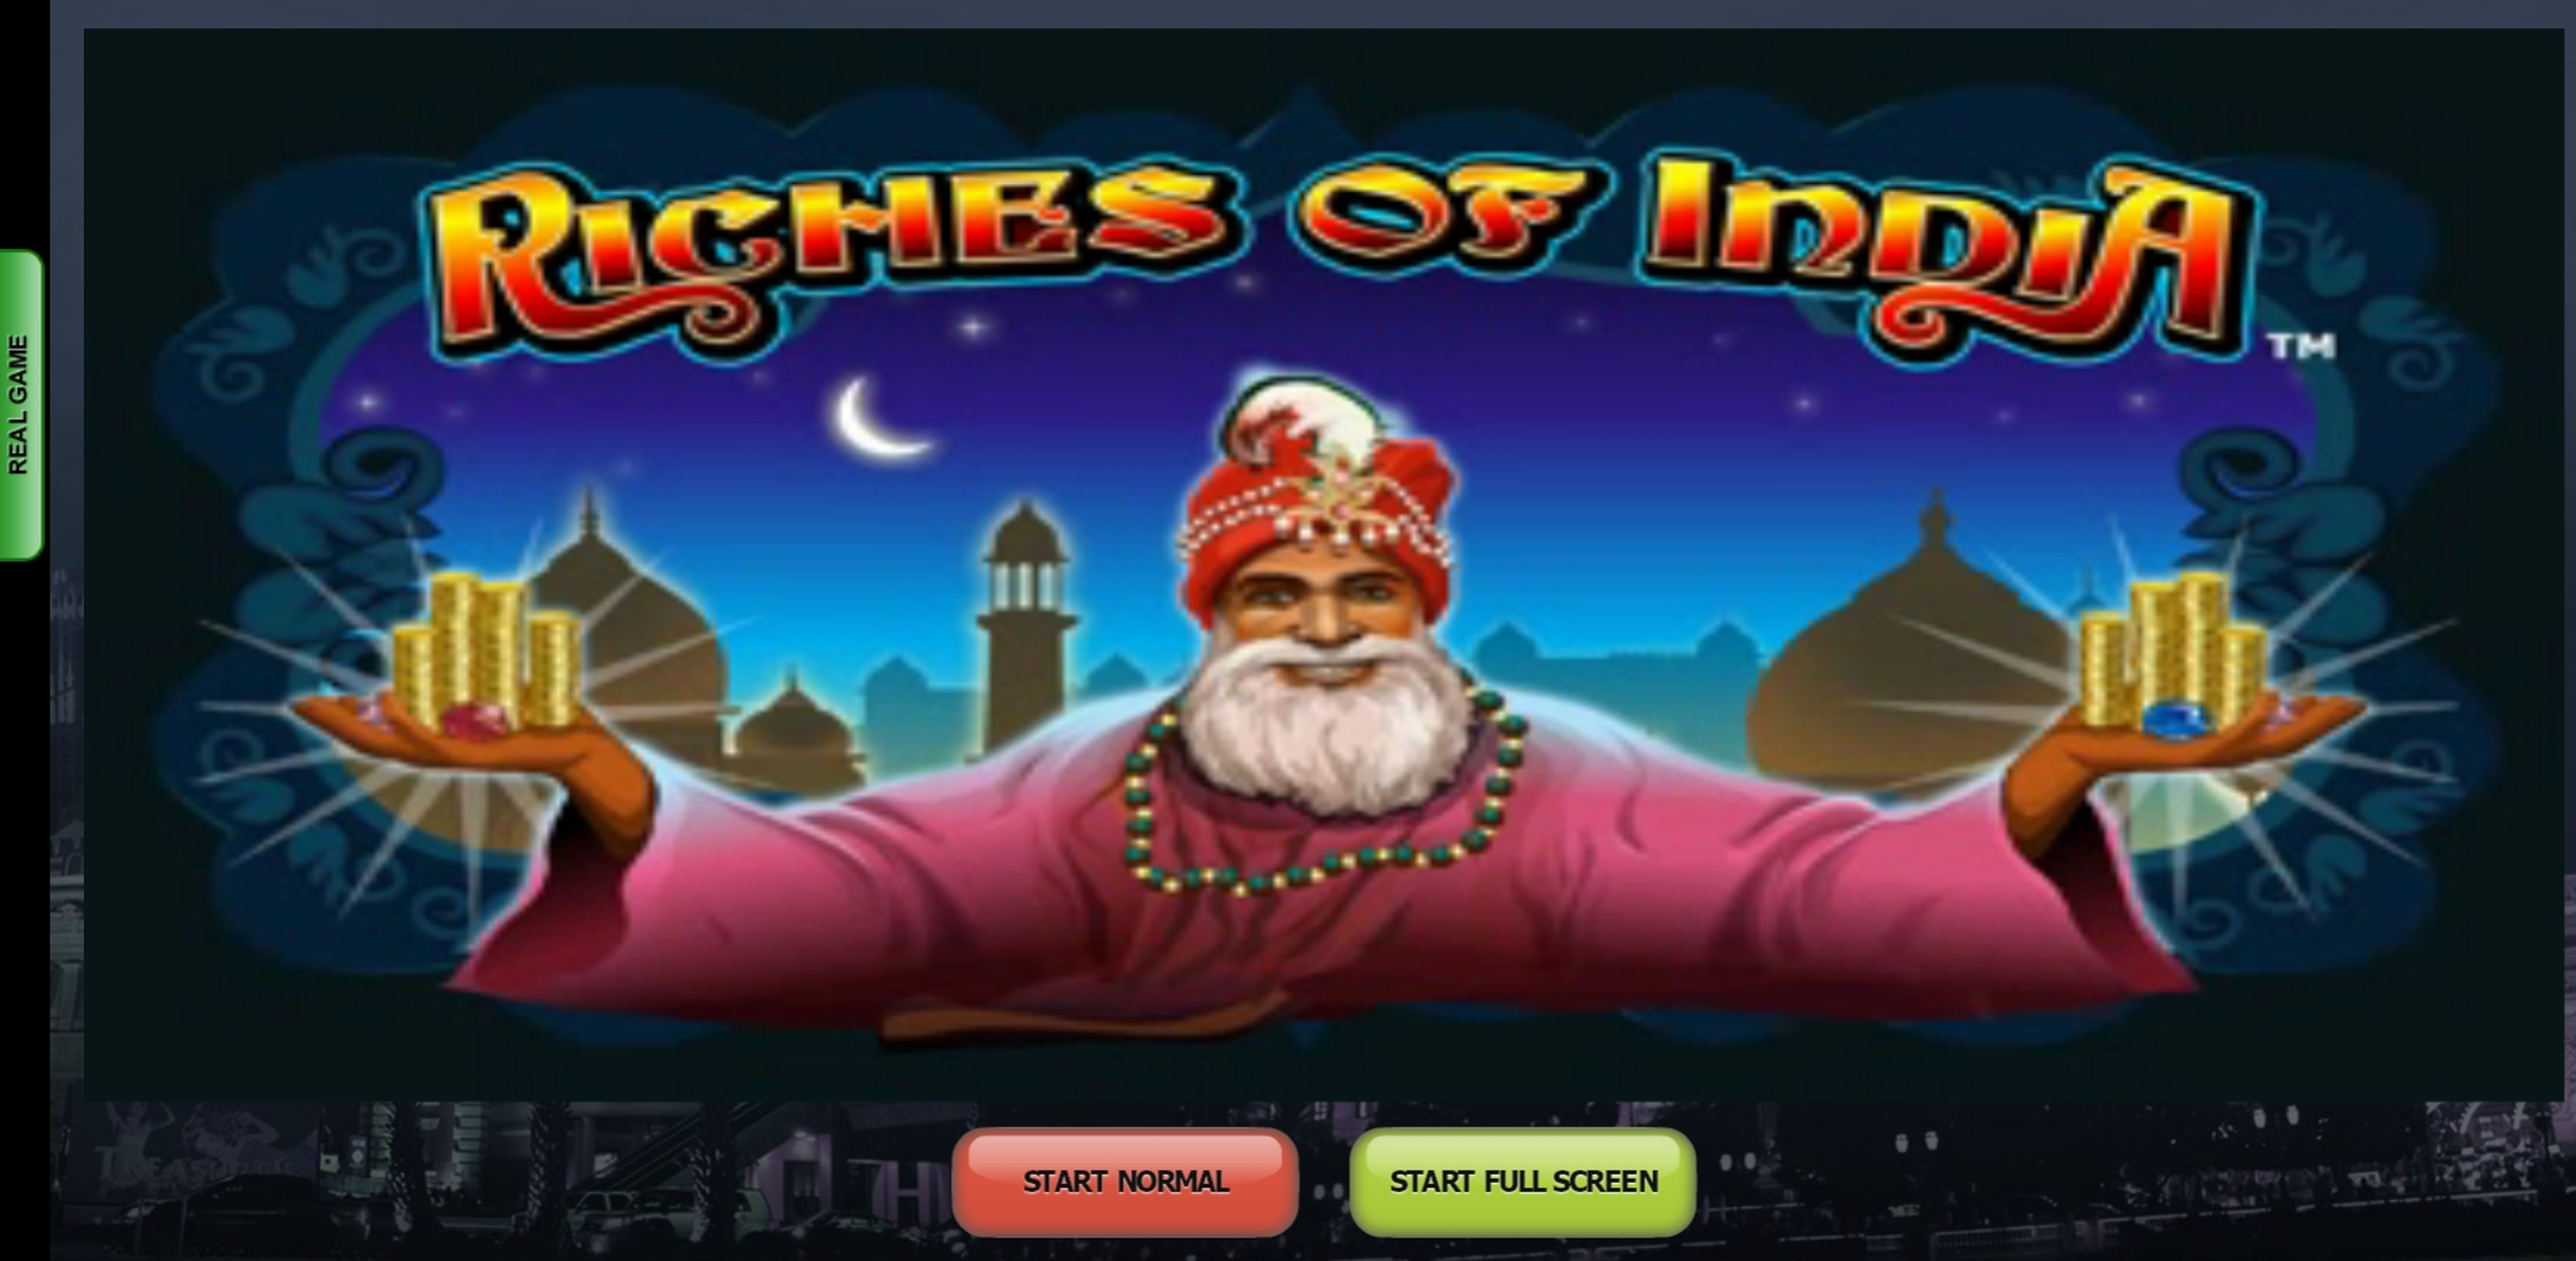 Play Riches of India Free Casino Slot Game by Novomatic